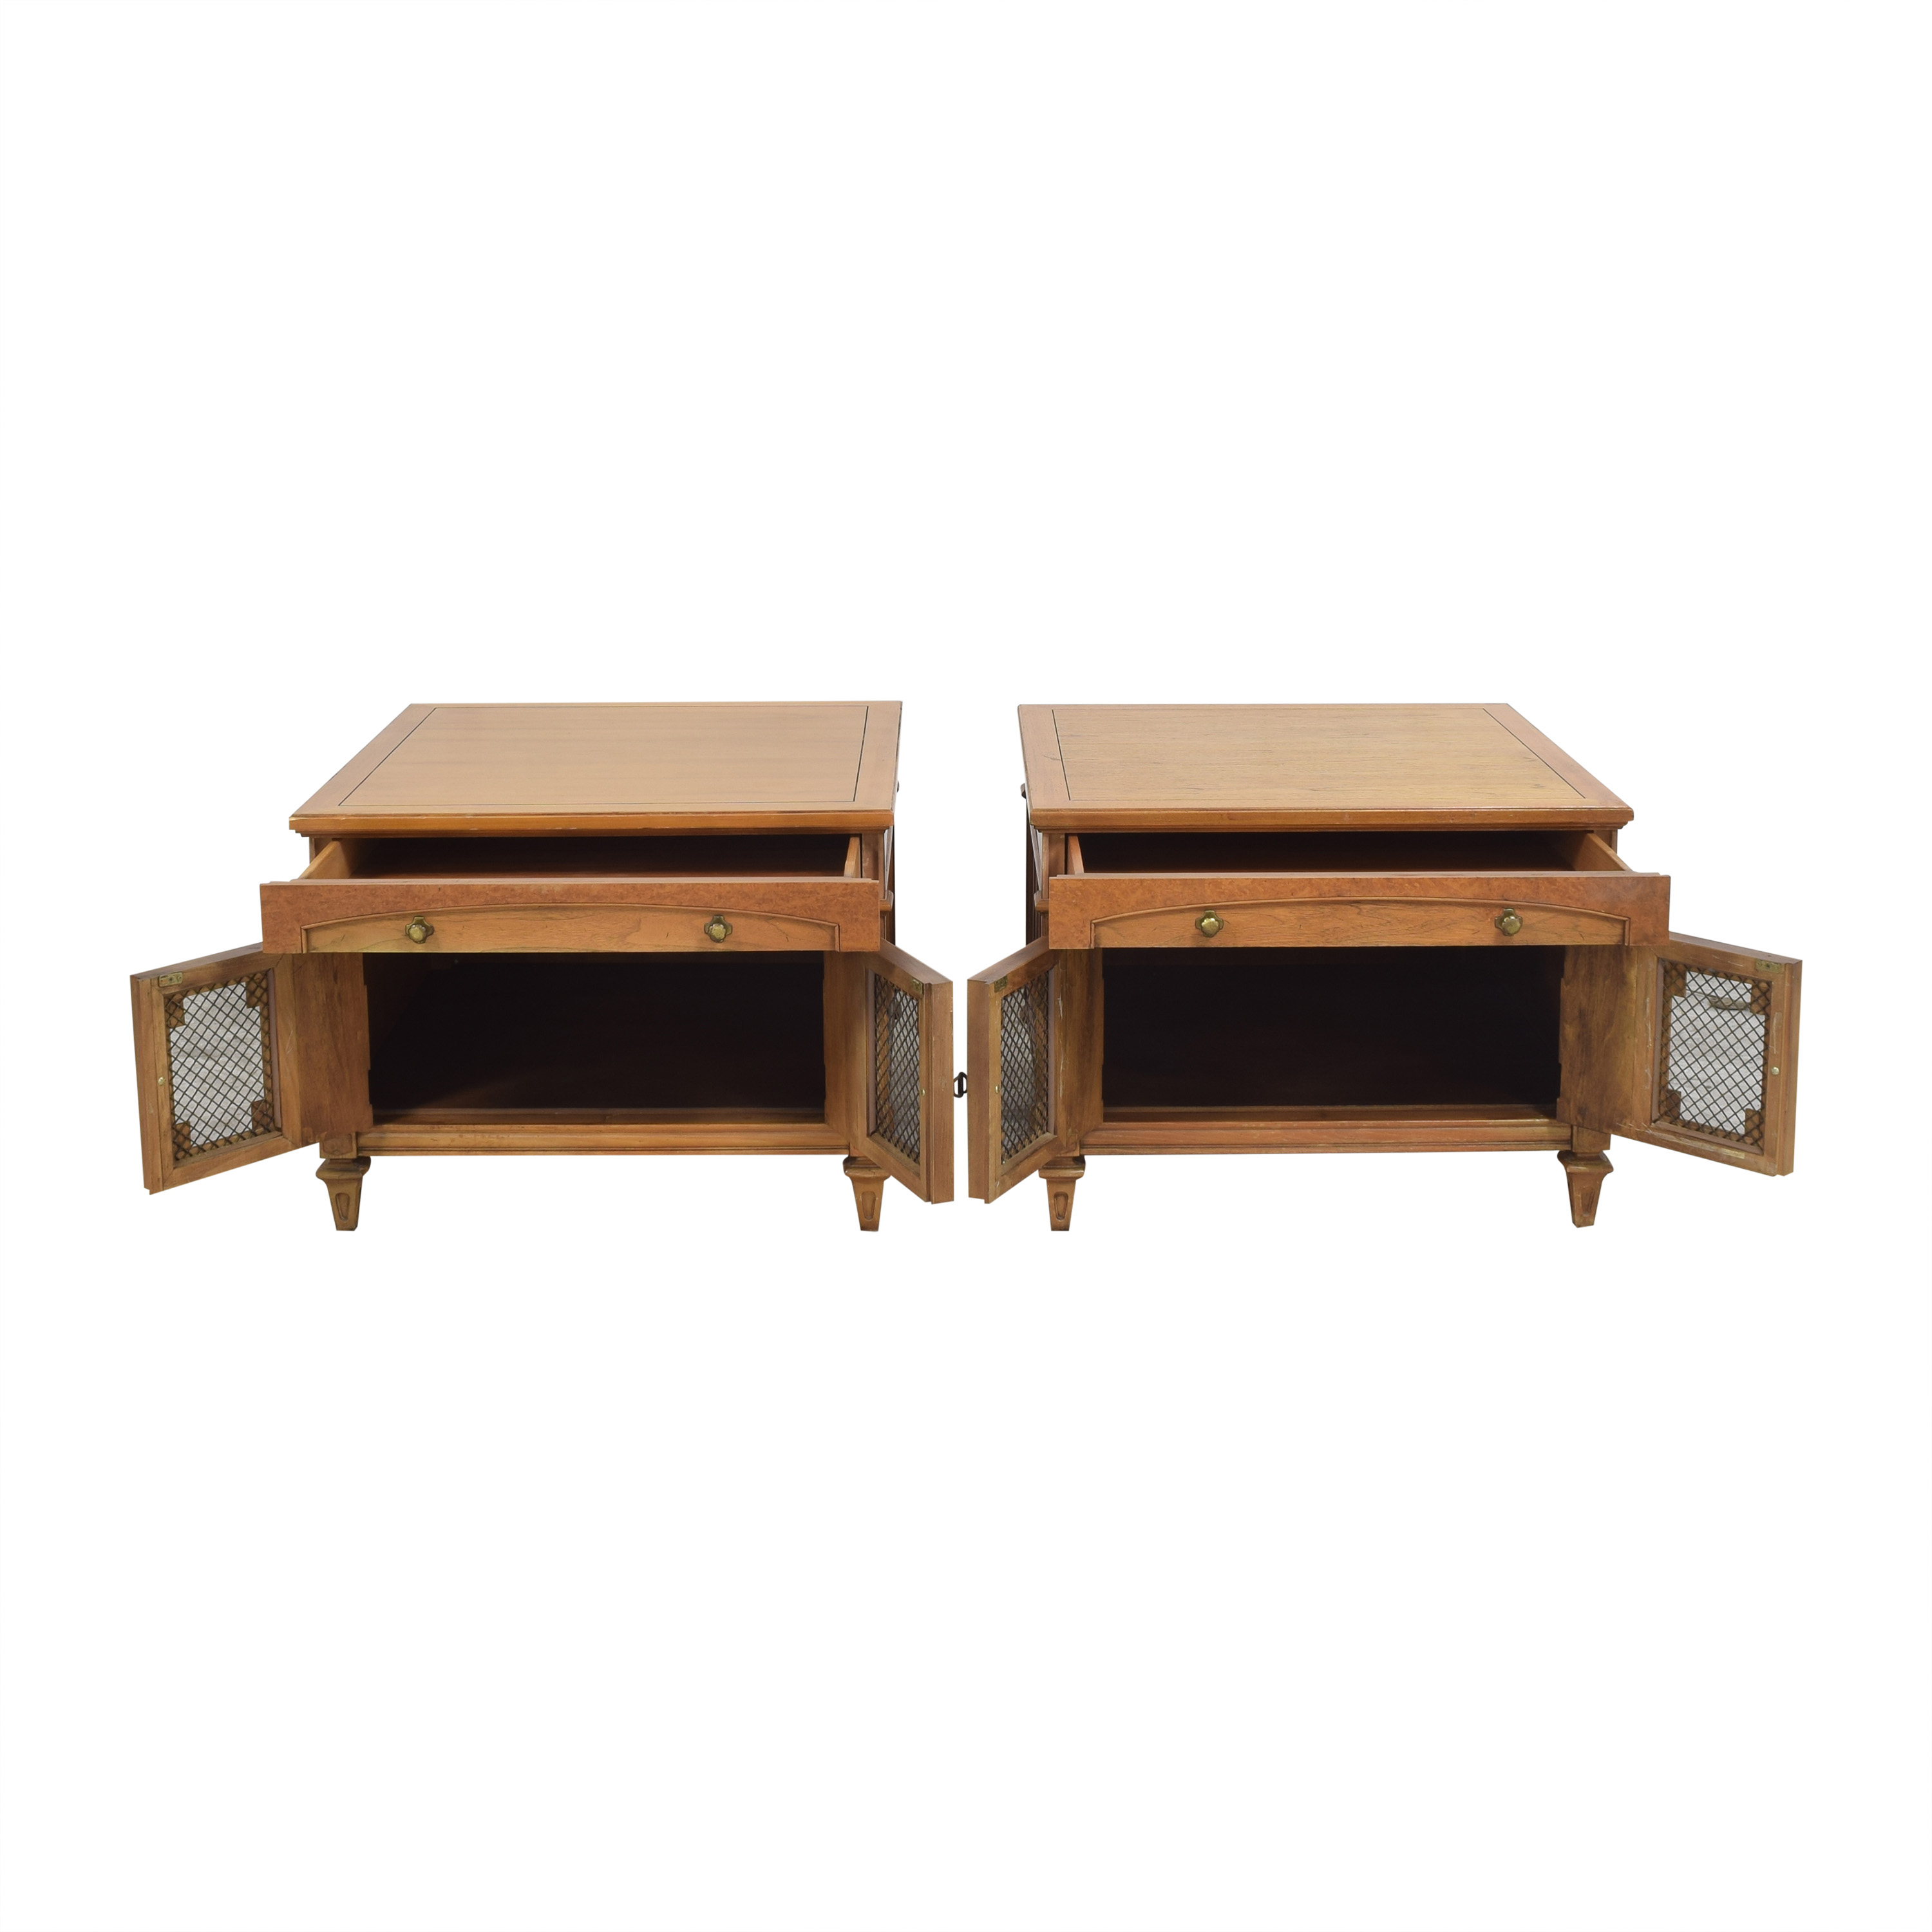 Thomasville Thomasville Two Door End Tables for sale